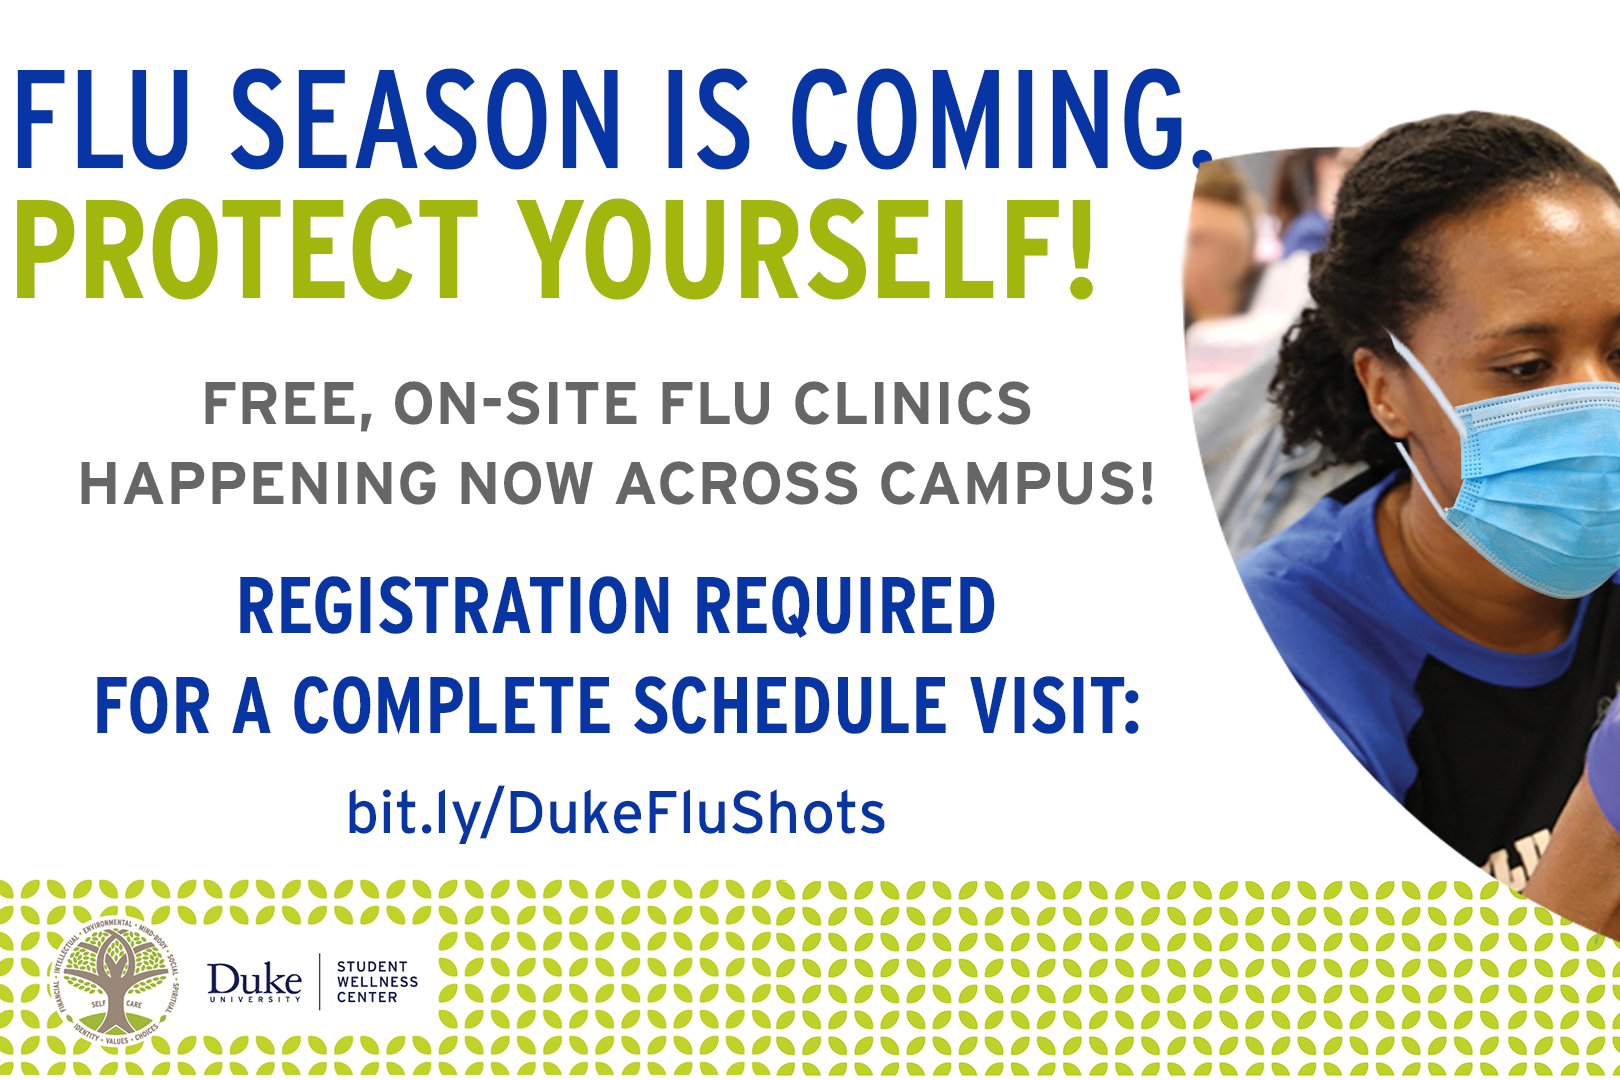 Flu Season is coming protect yourself! Free On Site Flu Clinics Happening Now Across Campus! Registration is required fro a complete schedule visit: bit.ly/DukeFluShots